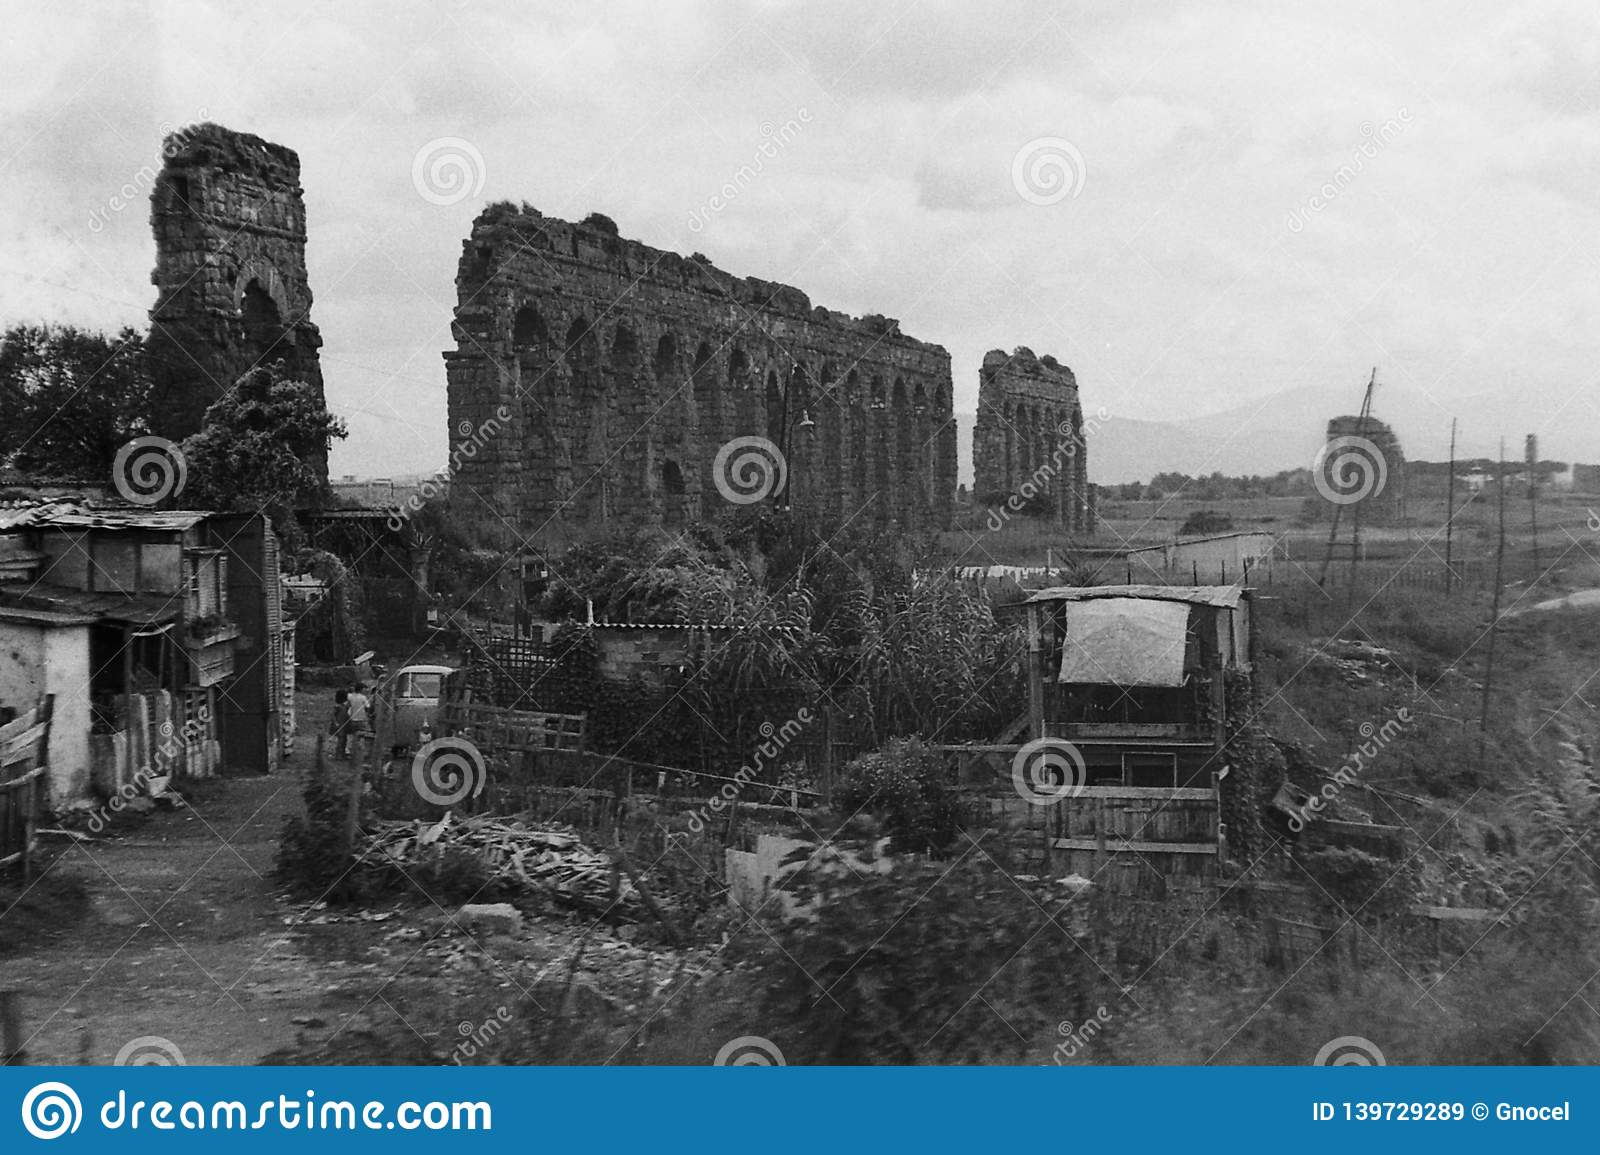 ROME, ITALY, 1966 - The ruins of the Roman aqueduct are home to some poor barracks